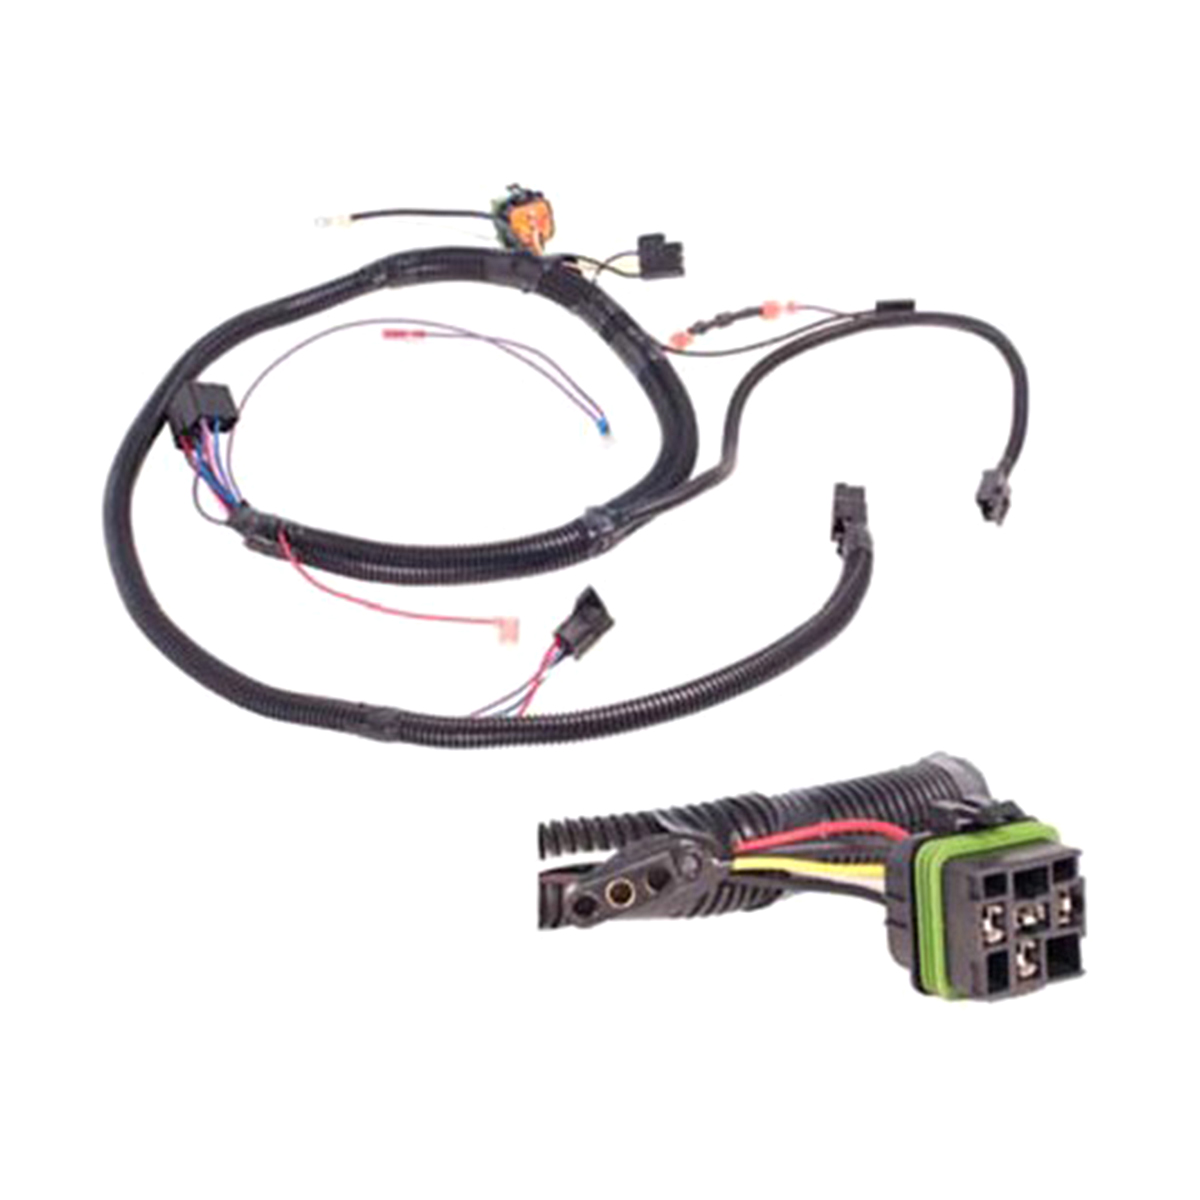 500052 Dixie Chopper Generac 33HP Wiring Harness